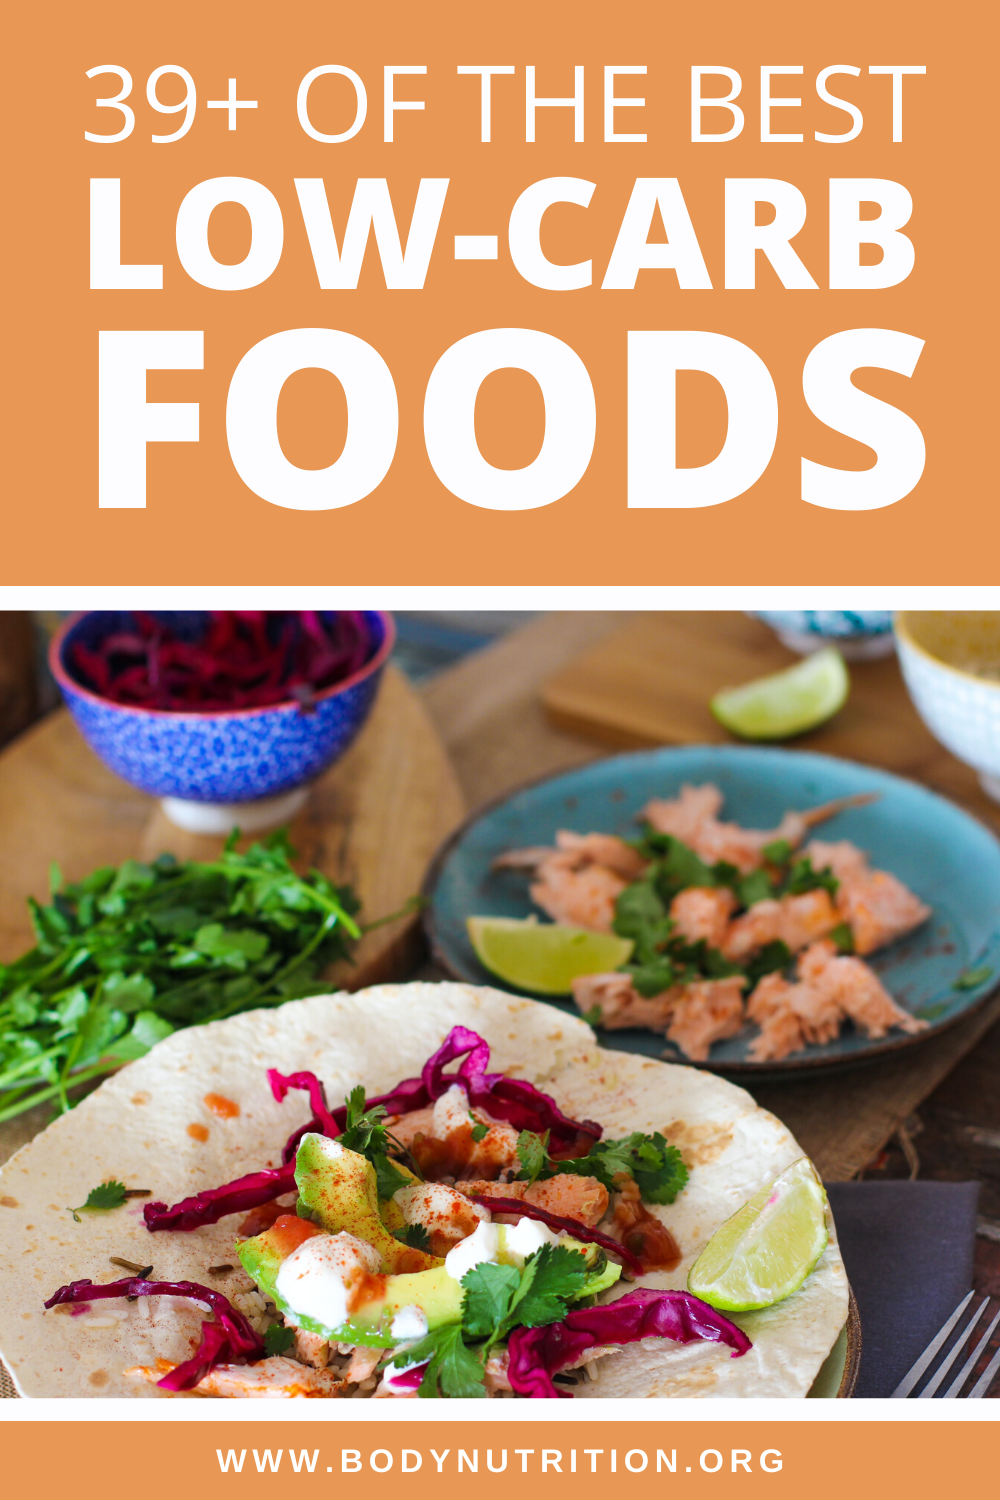 39 of the Best LowCarb Foods You Should Be Eating in 2020